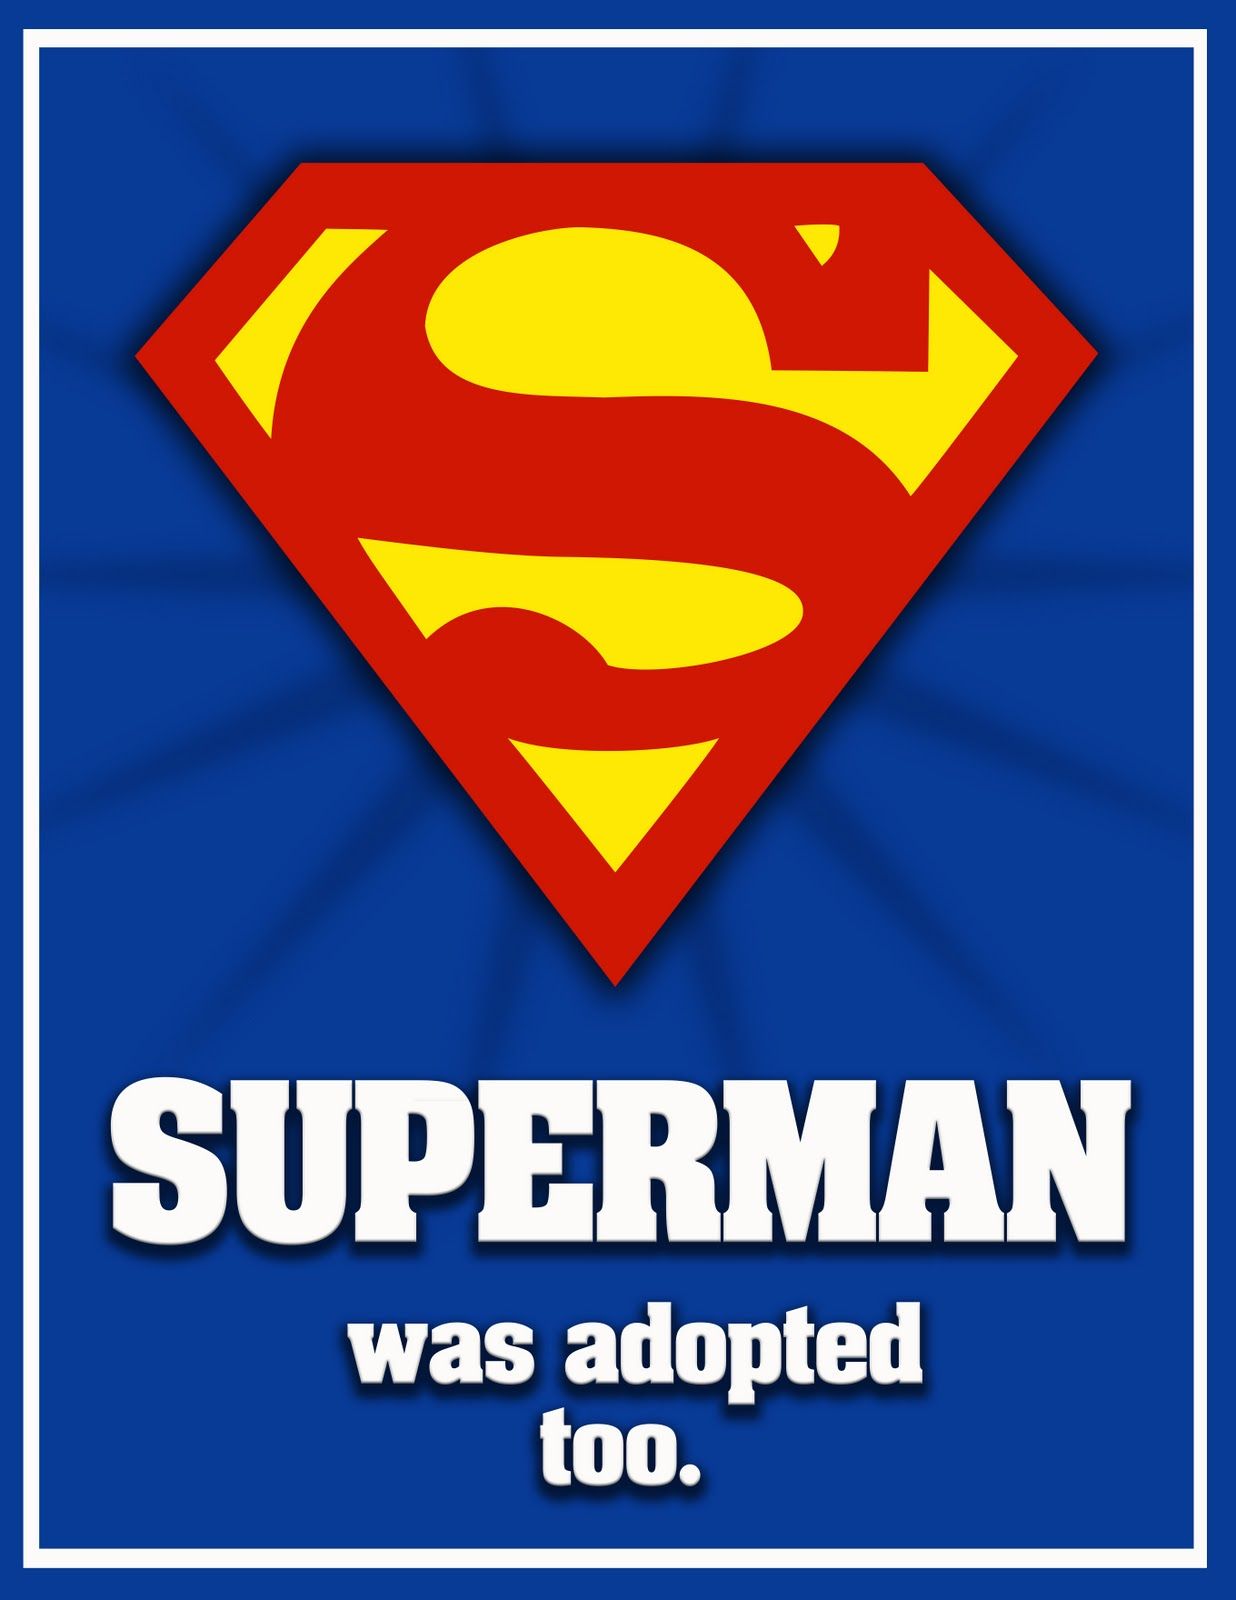 Superman - Adoption Update #2